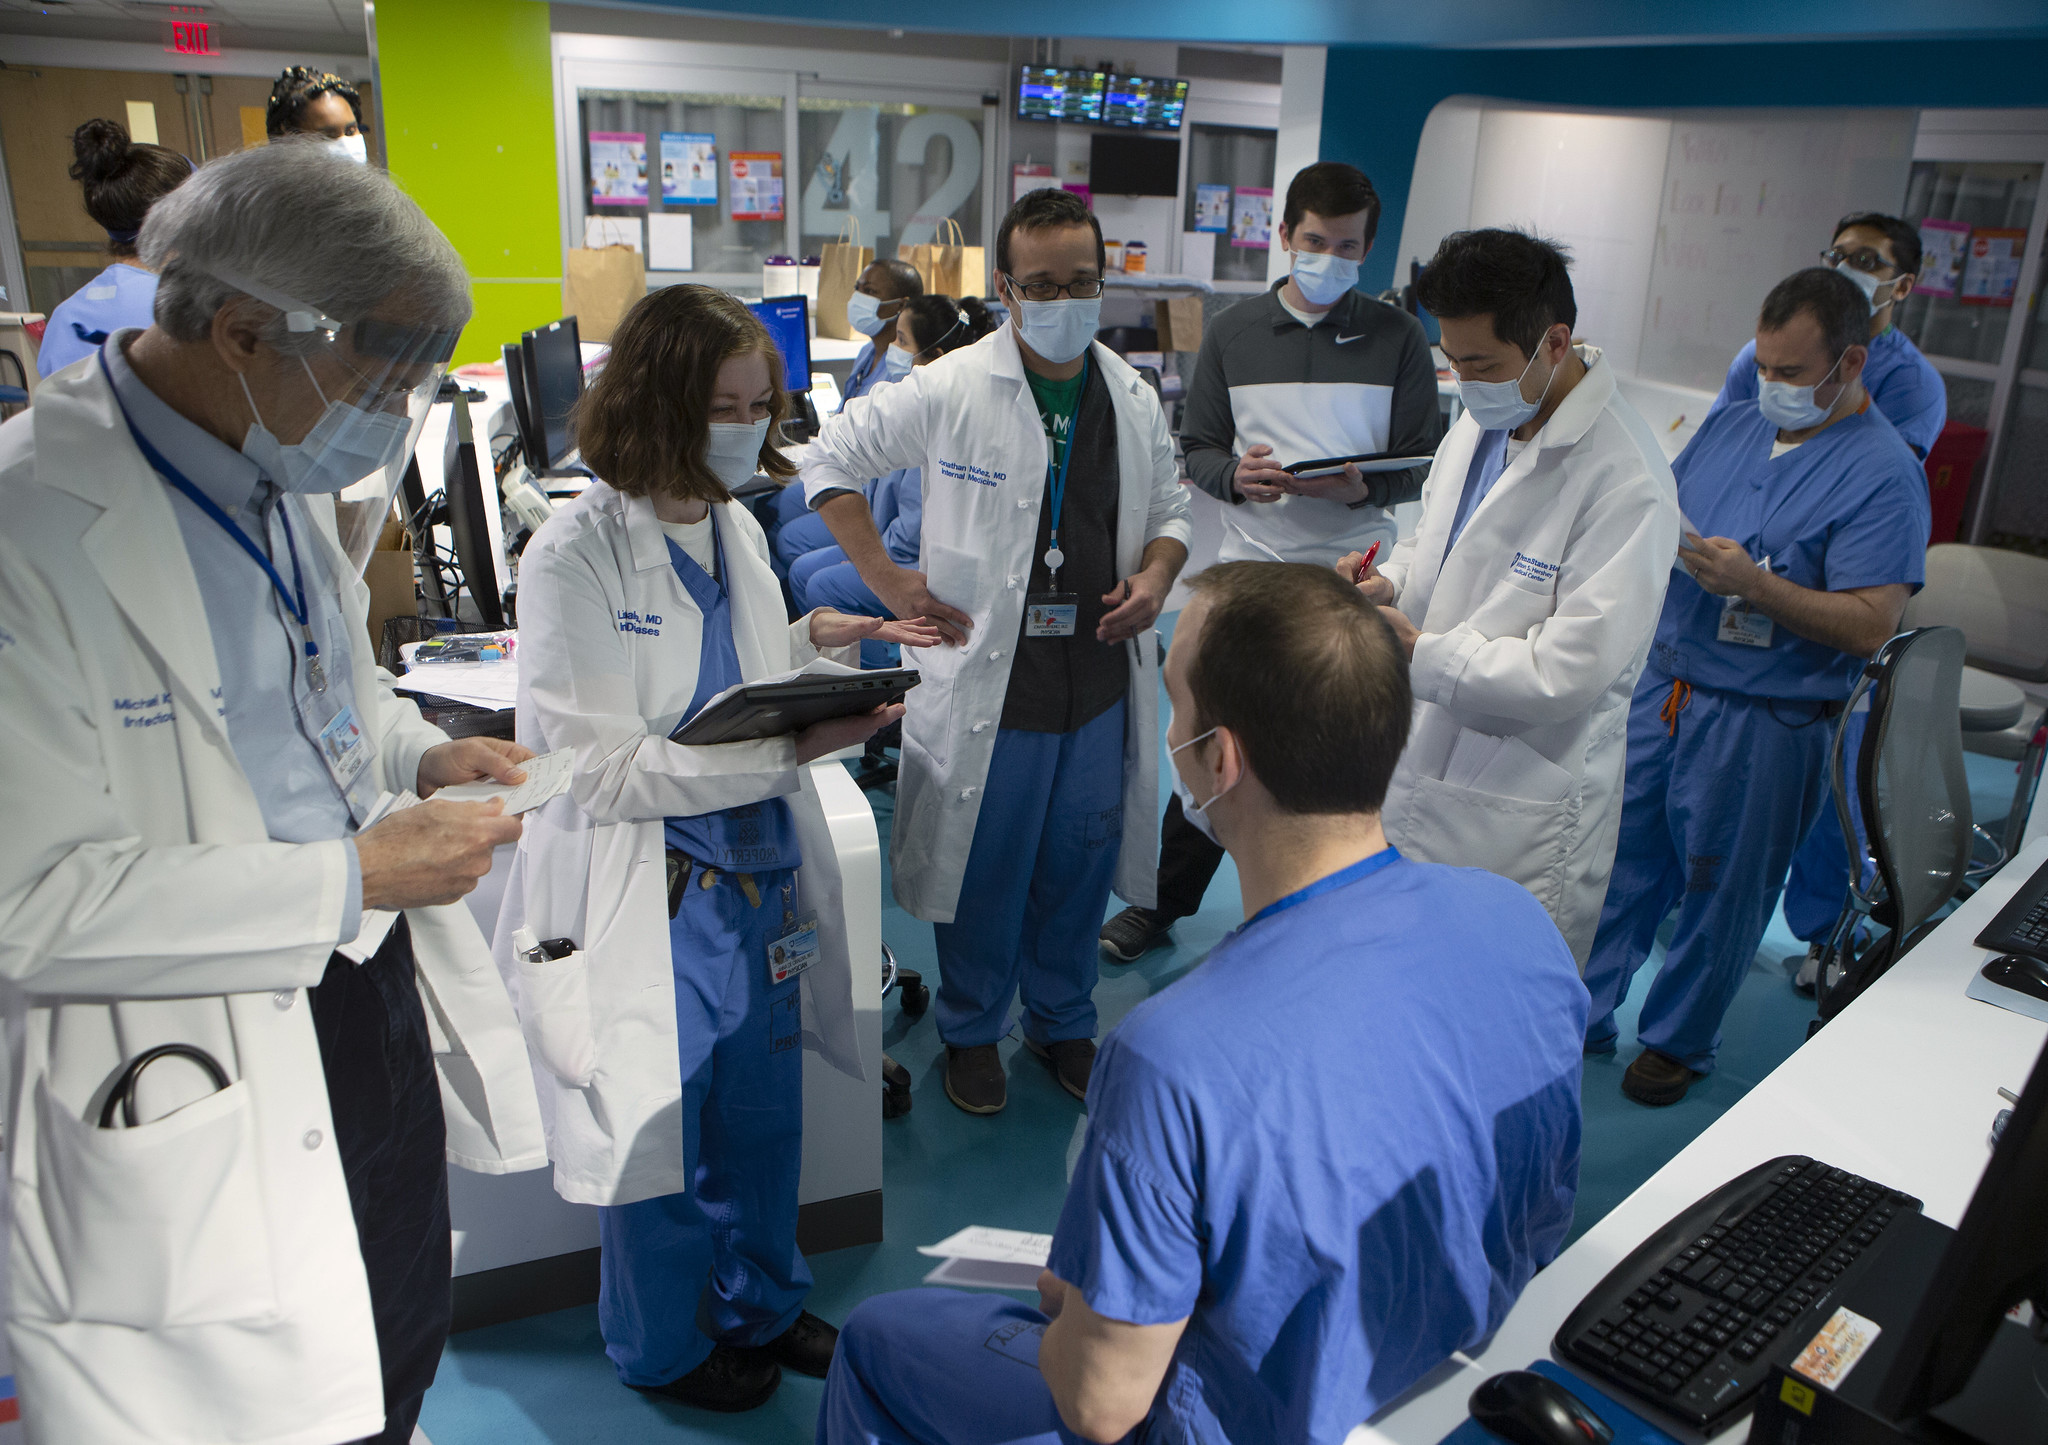 Men and women in scrubs stand in a circle in a hospital common area and look at documents.